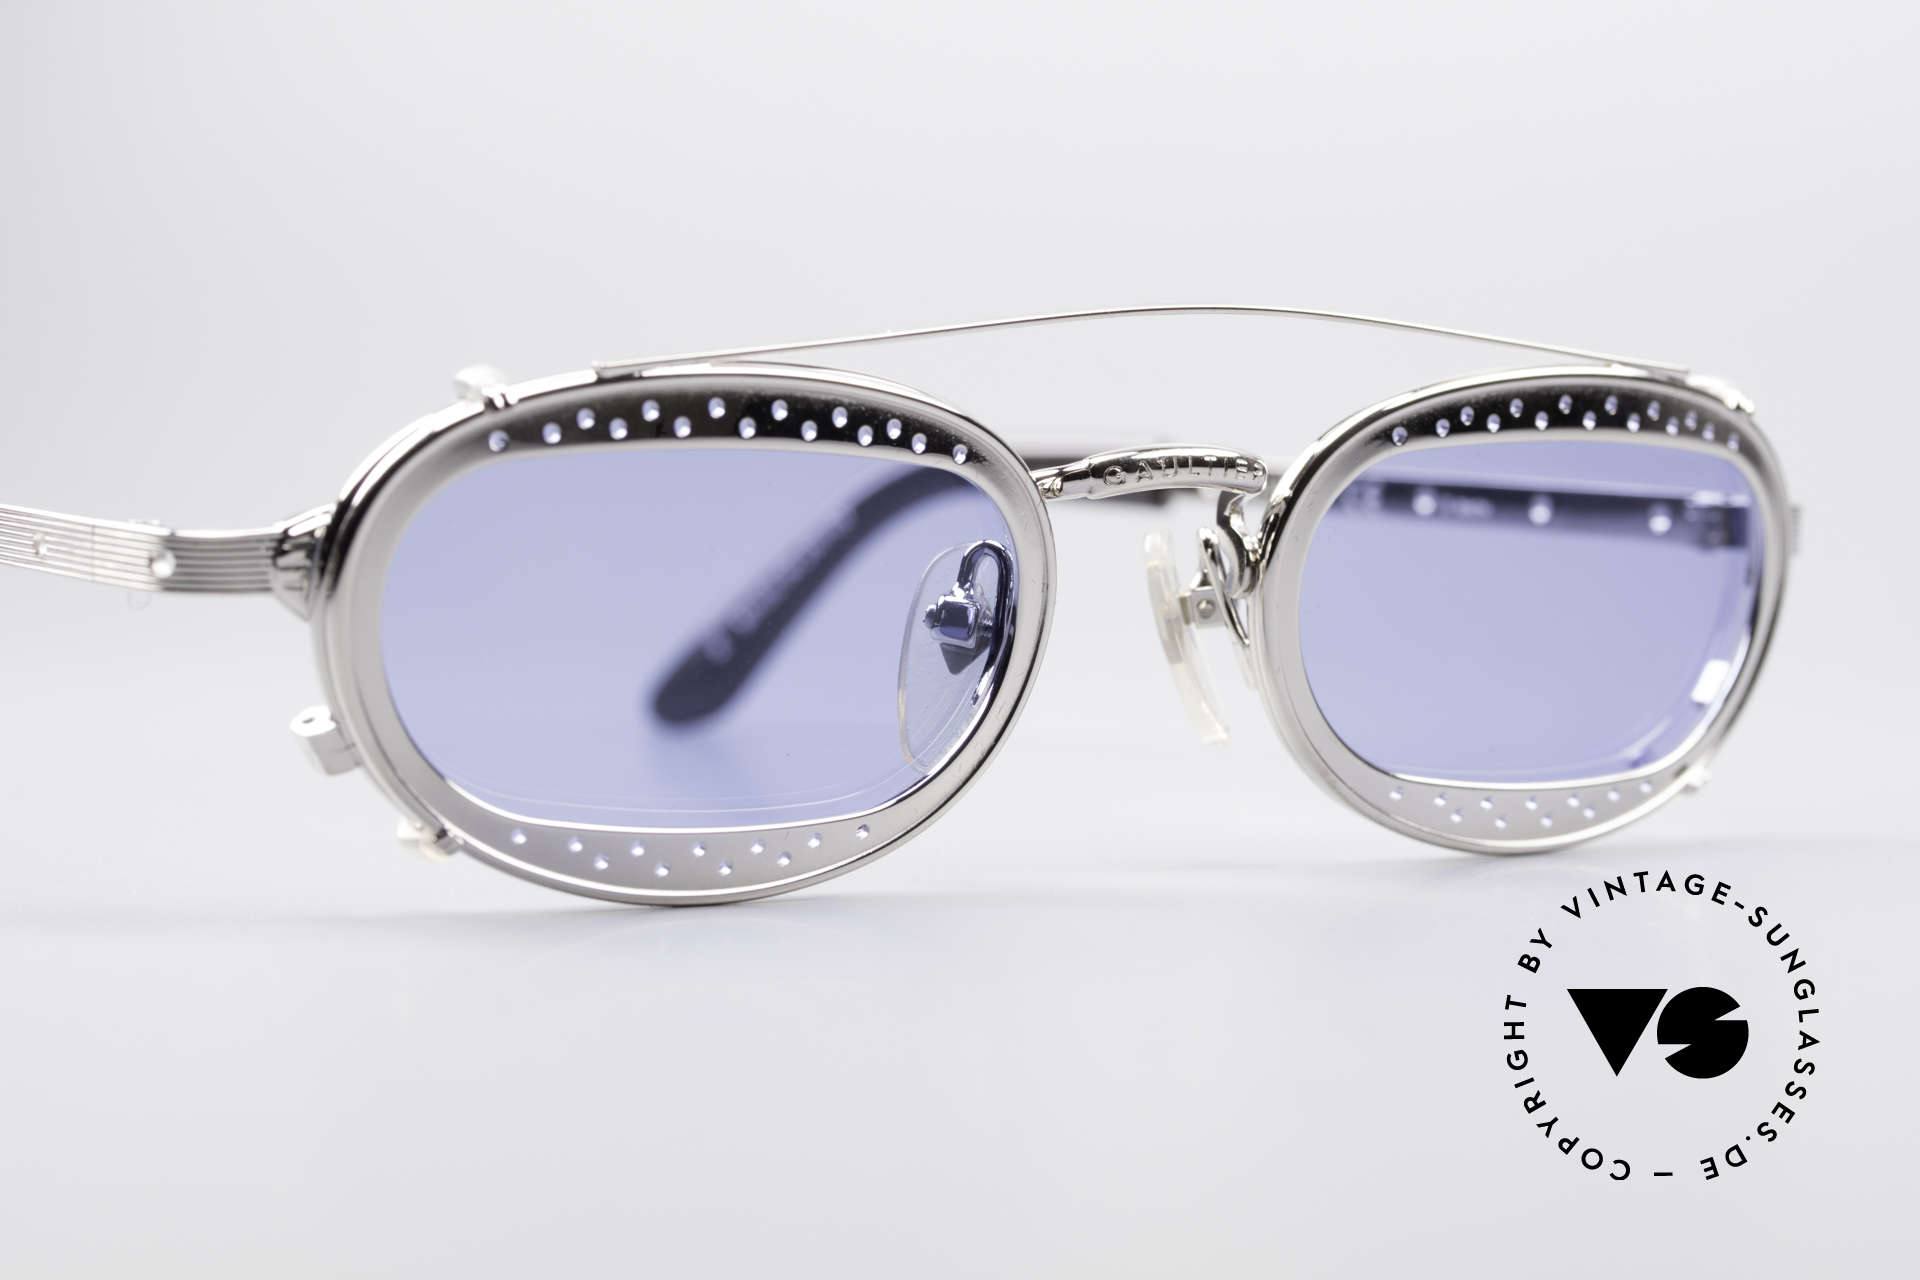 Jean Paul Gaultier 56-7116 Limited Vintage Glasses, unique JPG design & top-notch quality (made in Japan), Made for Men and Women